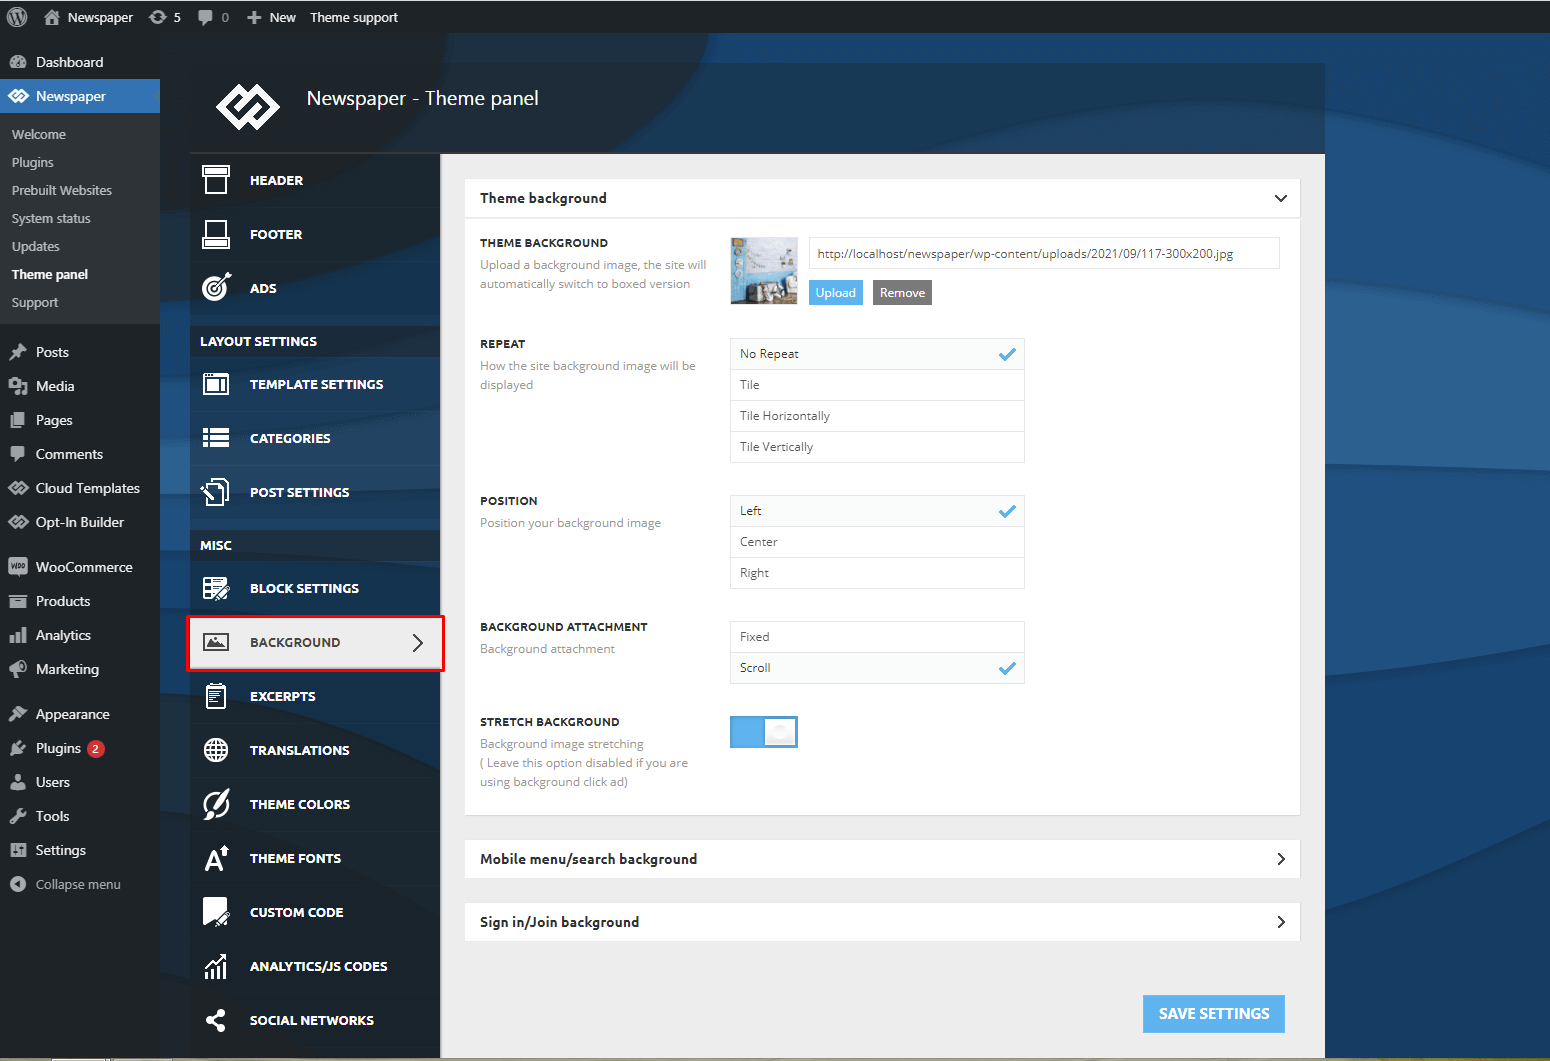 Background Introduction - Theme Settings